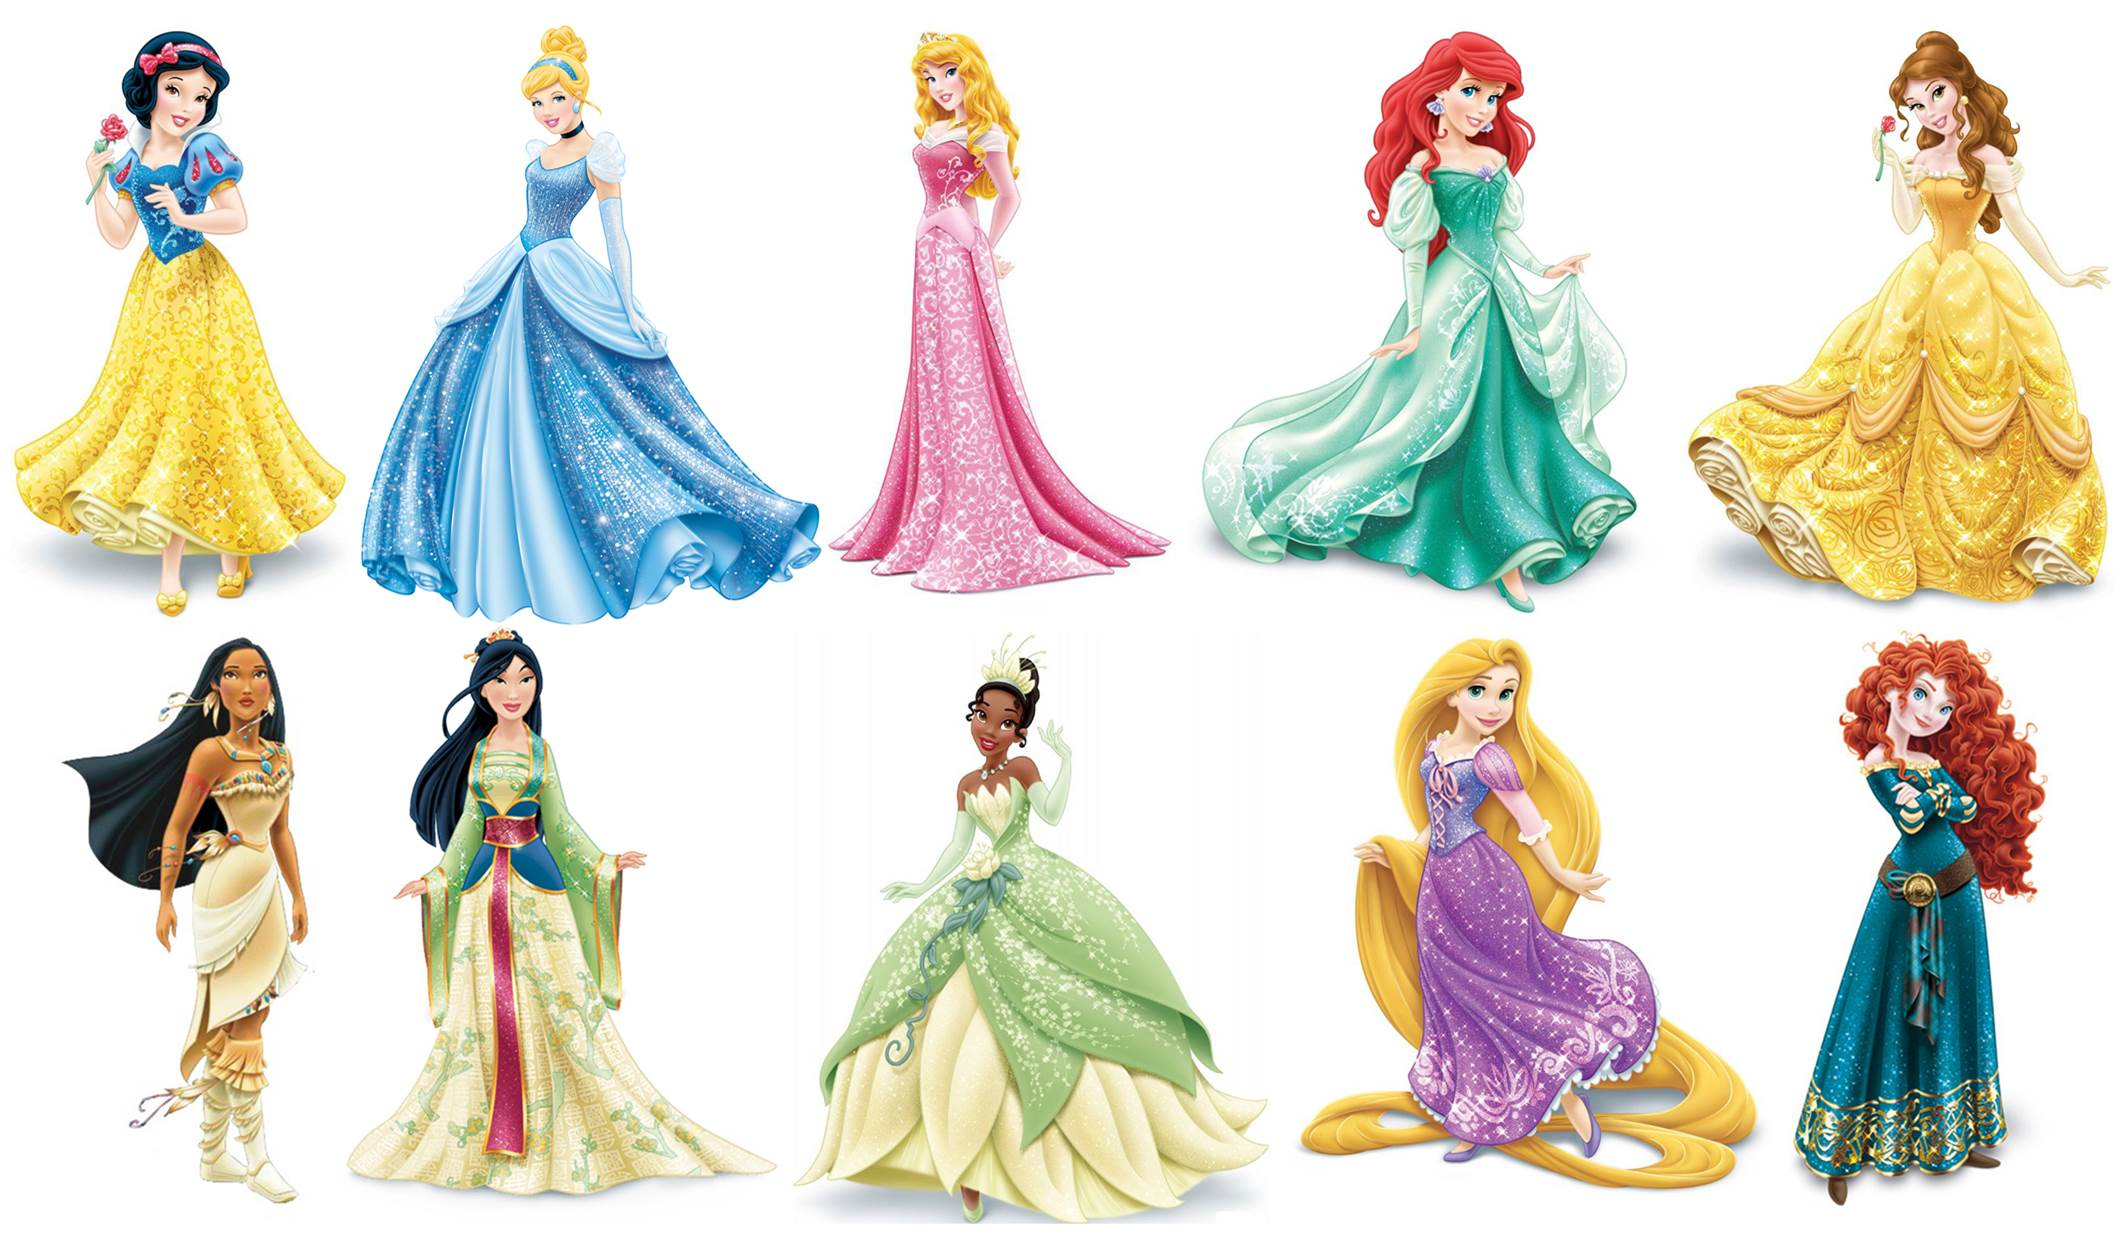 Disney Princess Character Design : From the screen to shelf an imperfect translation